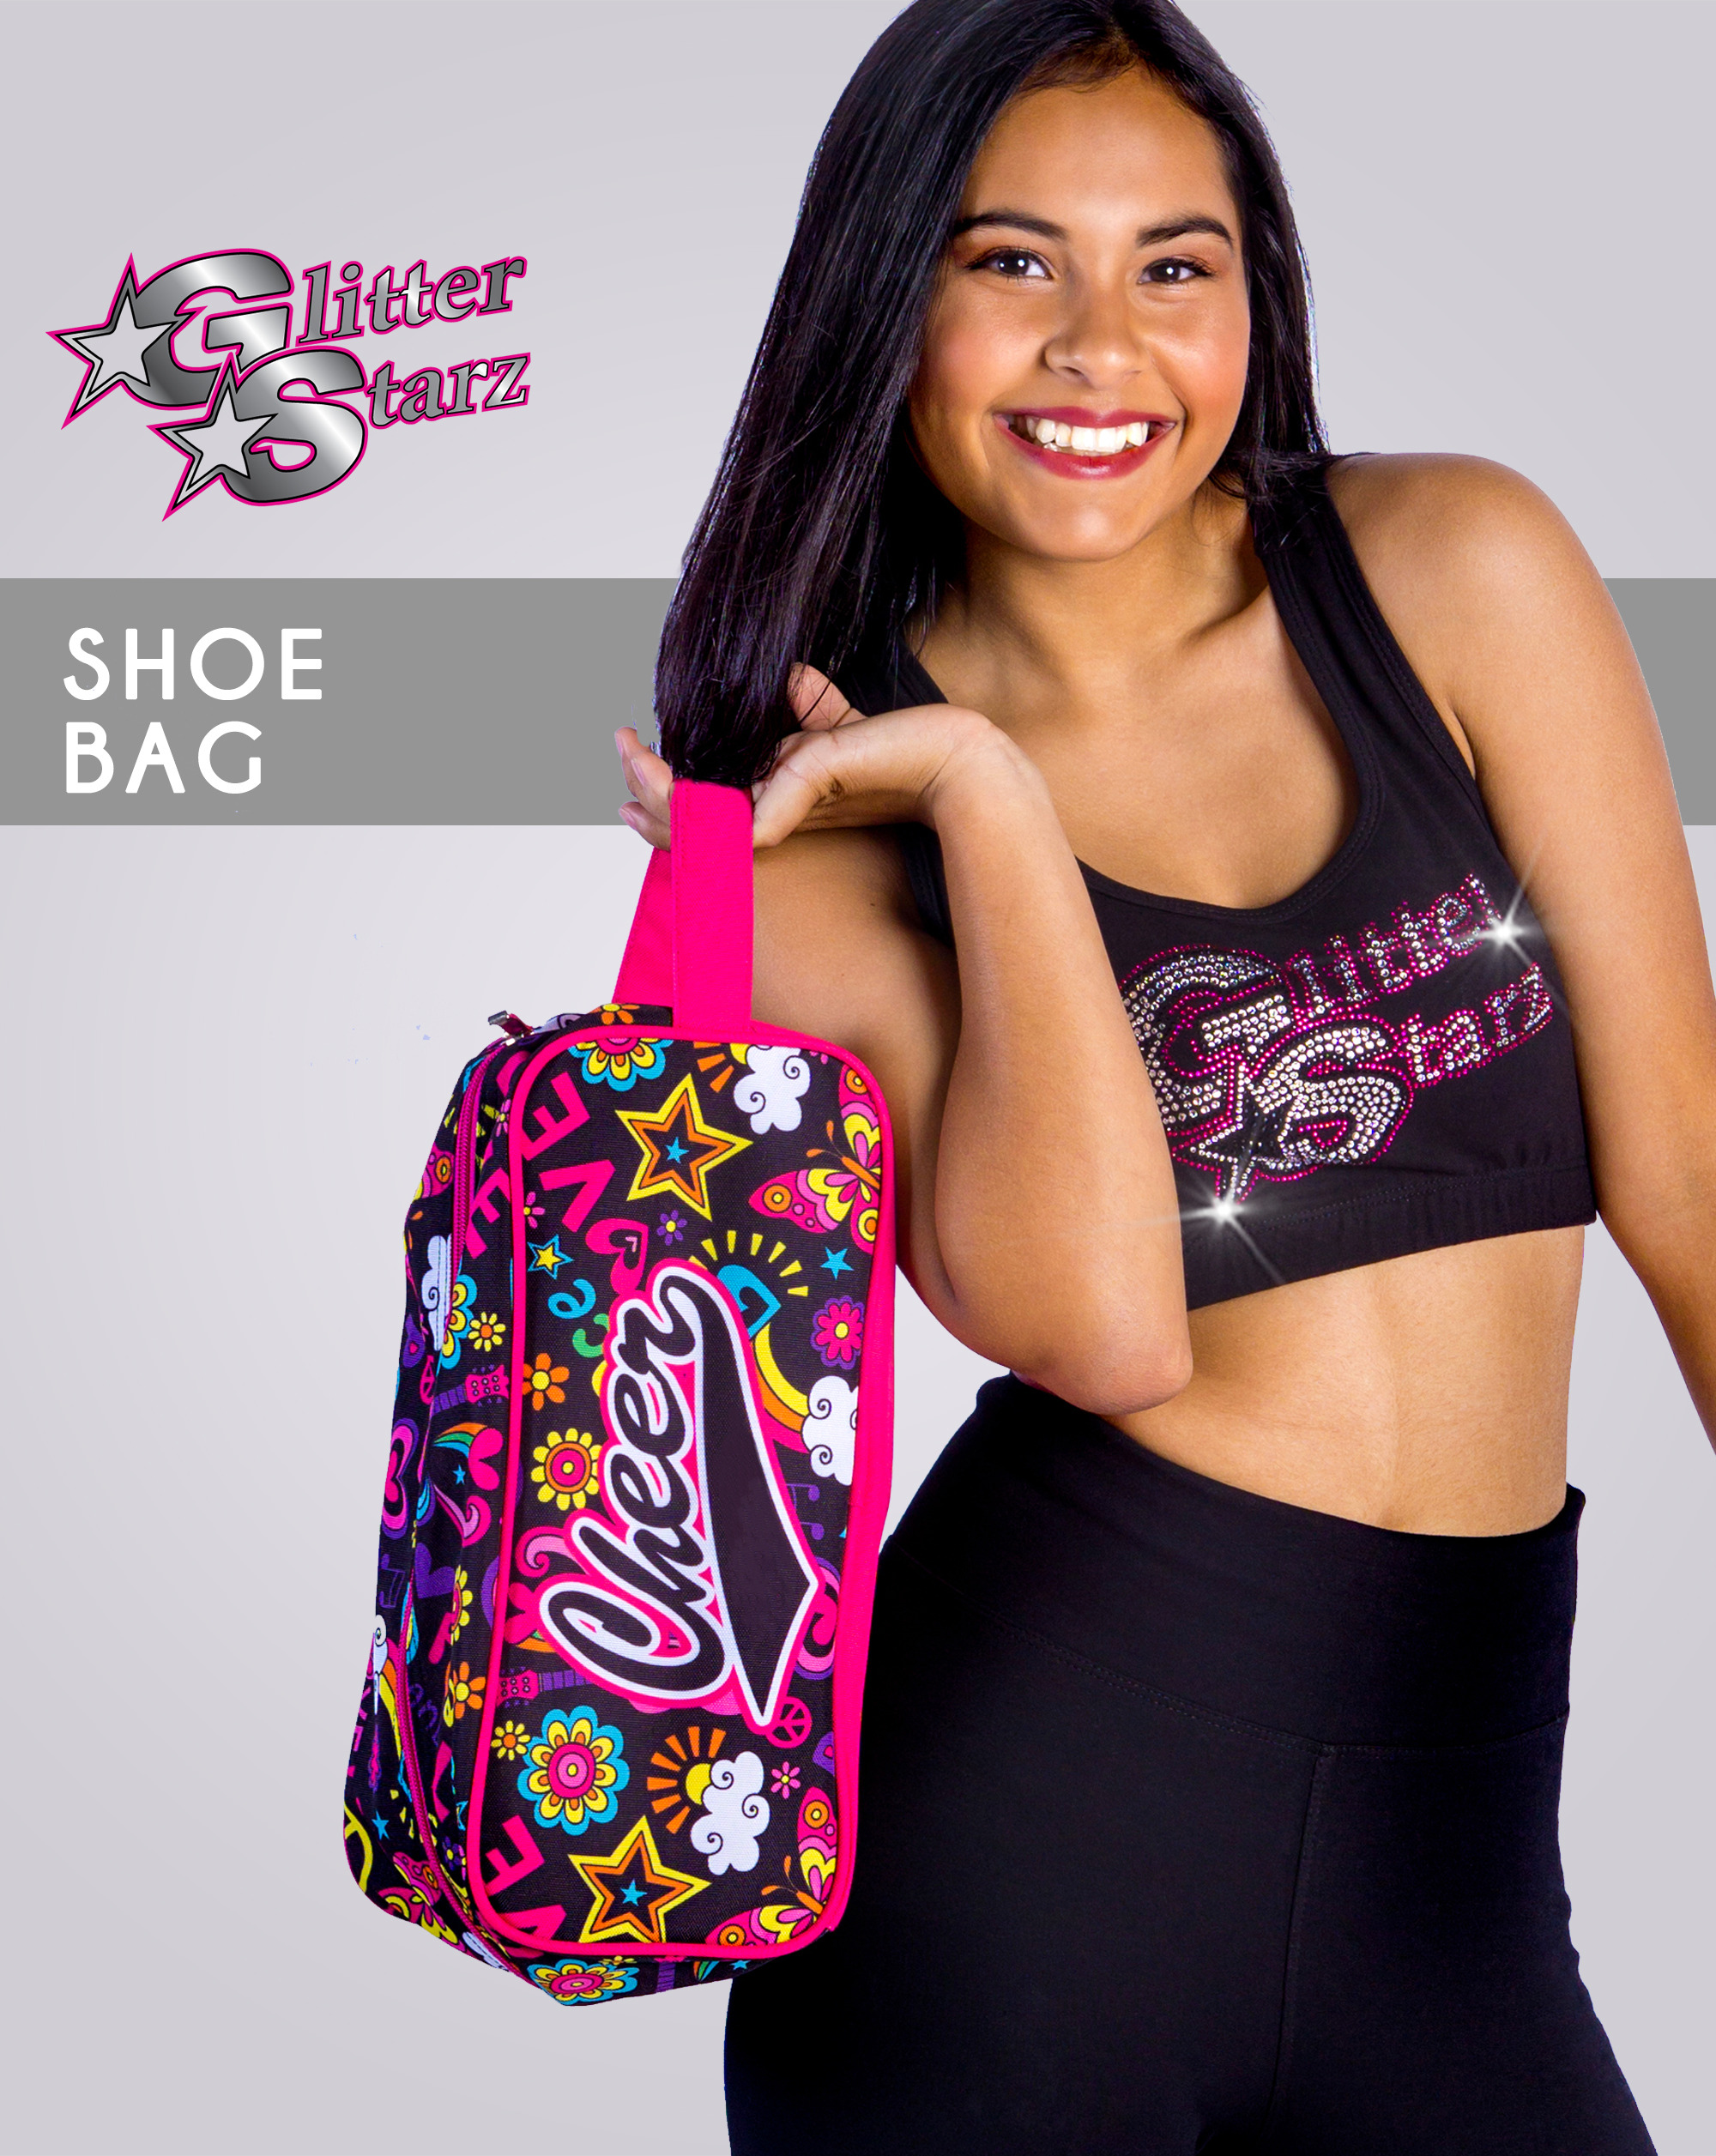 glitterstarz dyesub shoe bag pink cheer gifts competition travel